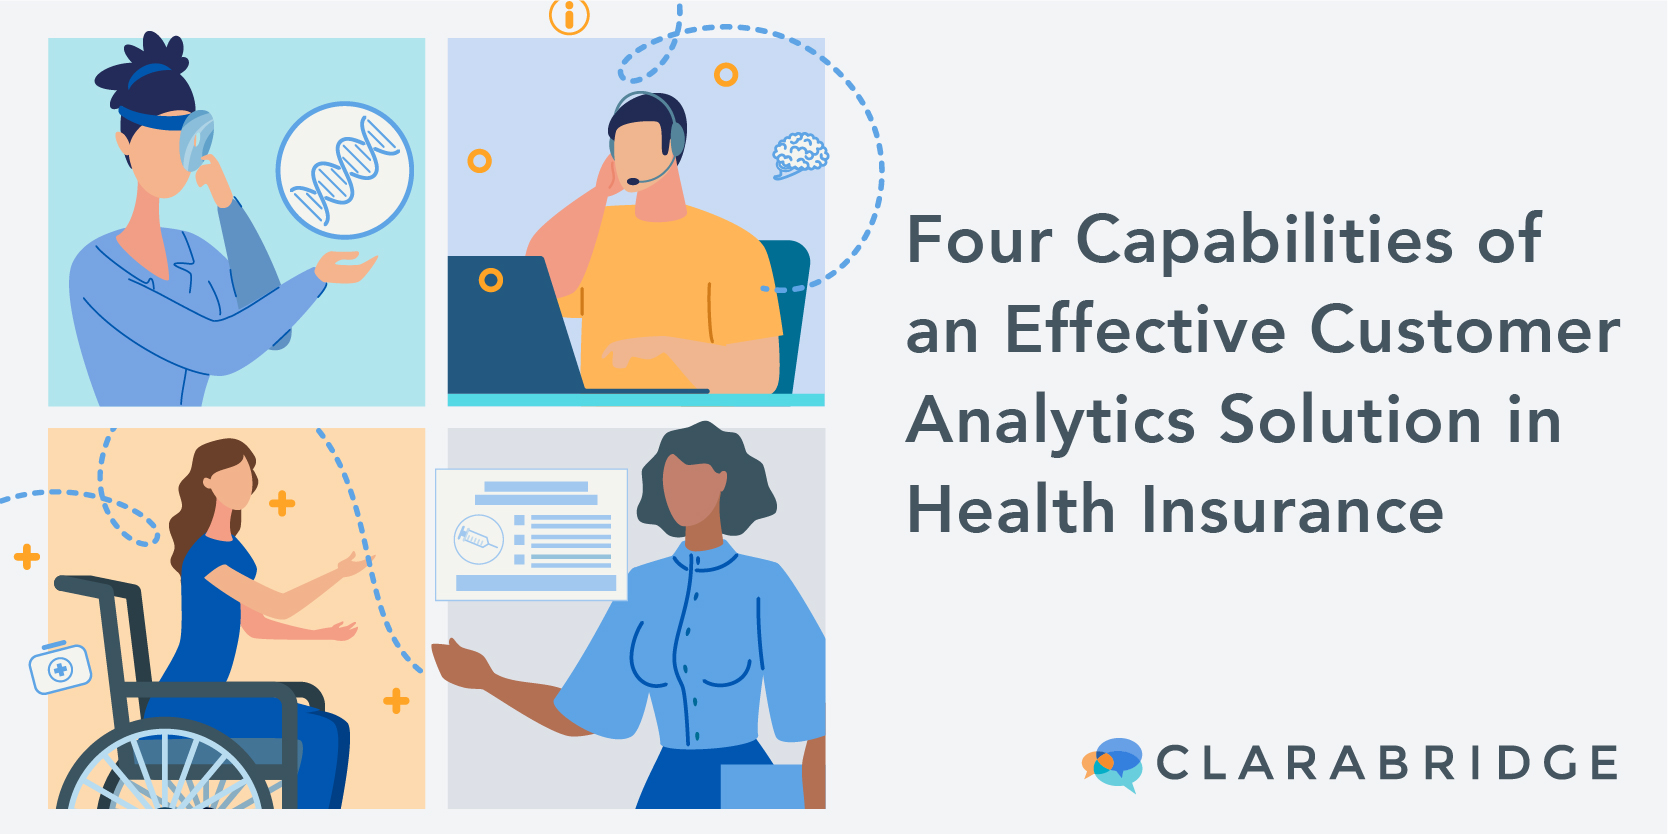 Four Capabilities of an Effective Customer Analytics Solution in Health Insurance